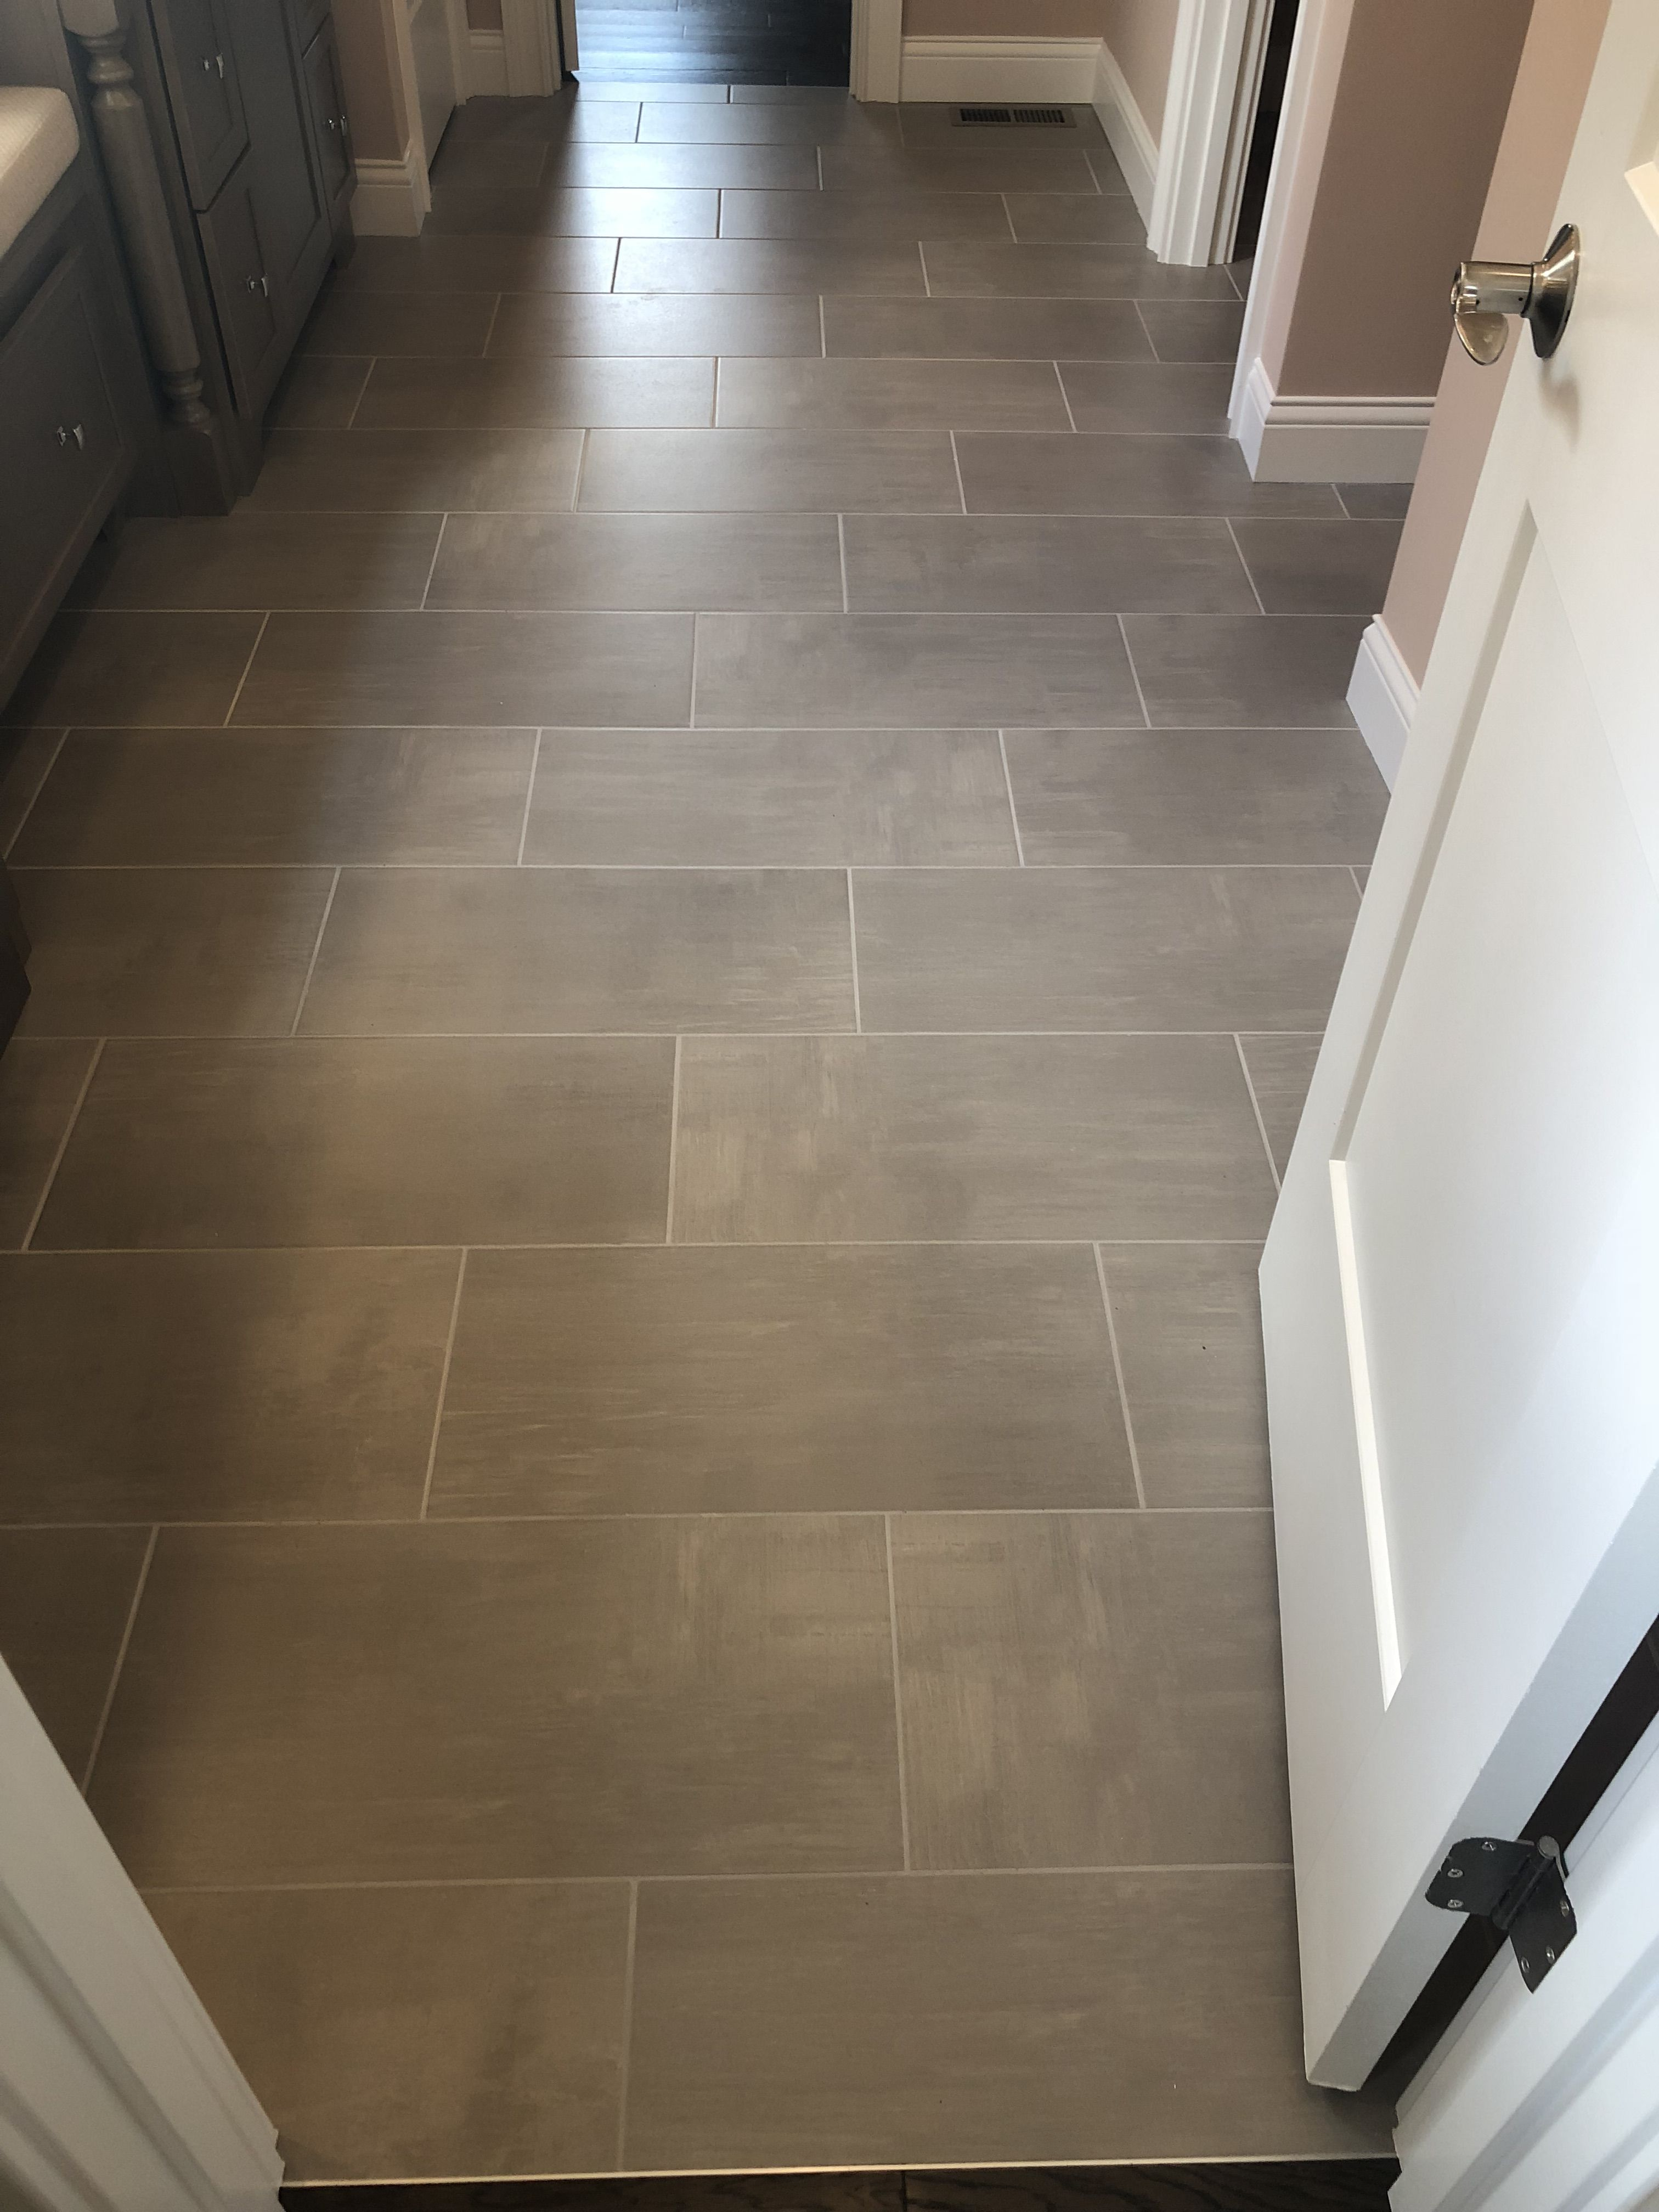 Skybridge 12x24 Gray Floor Tile Tile Floor Patterned Kitchen Tiles Grey Floor Tiles